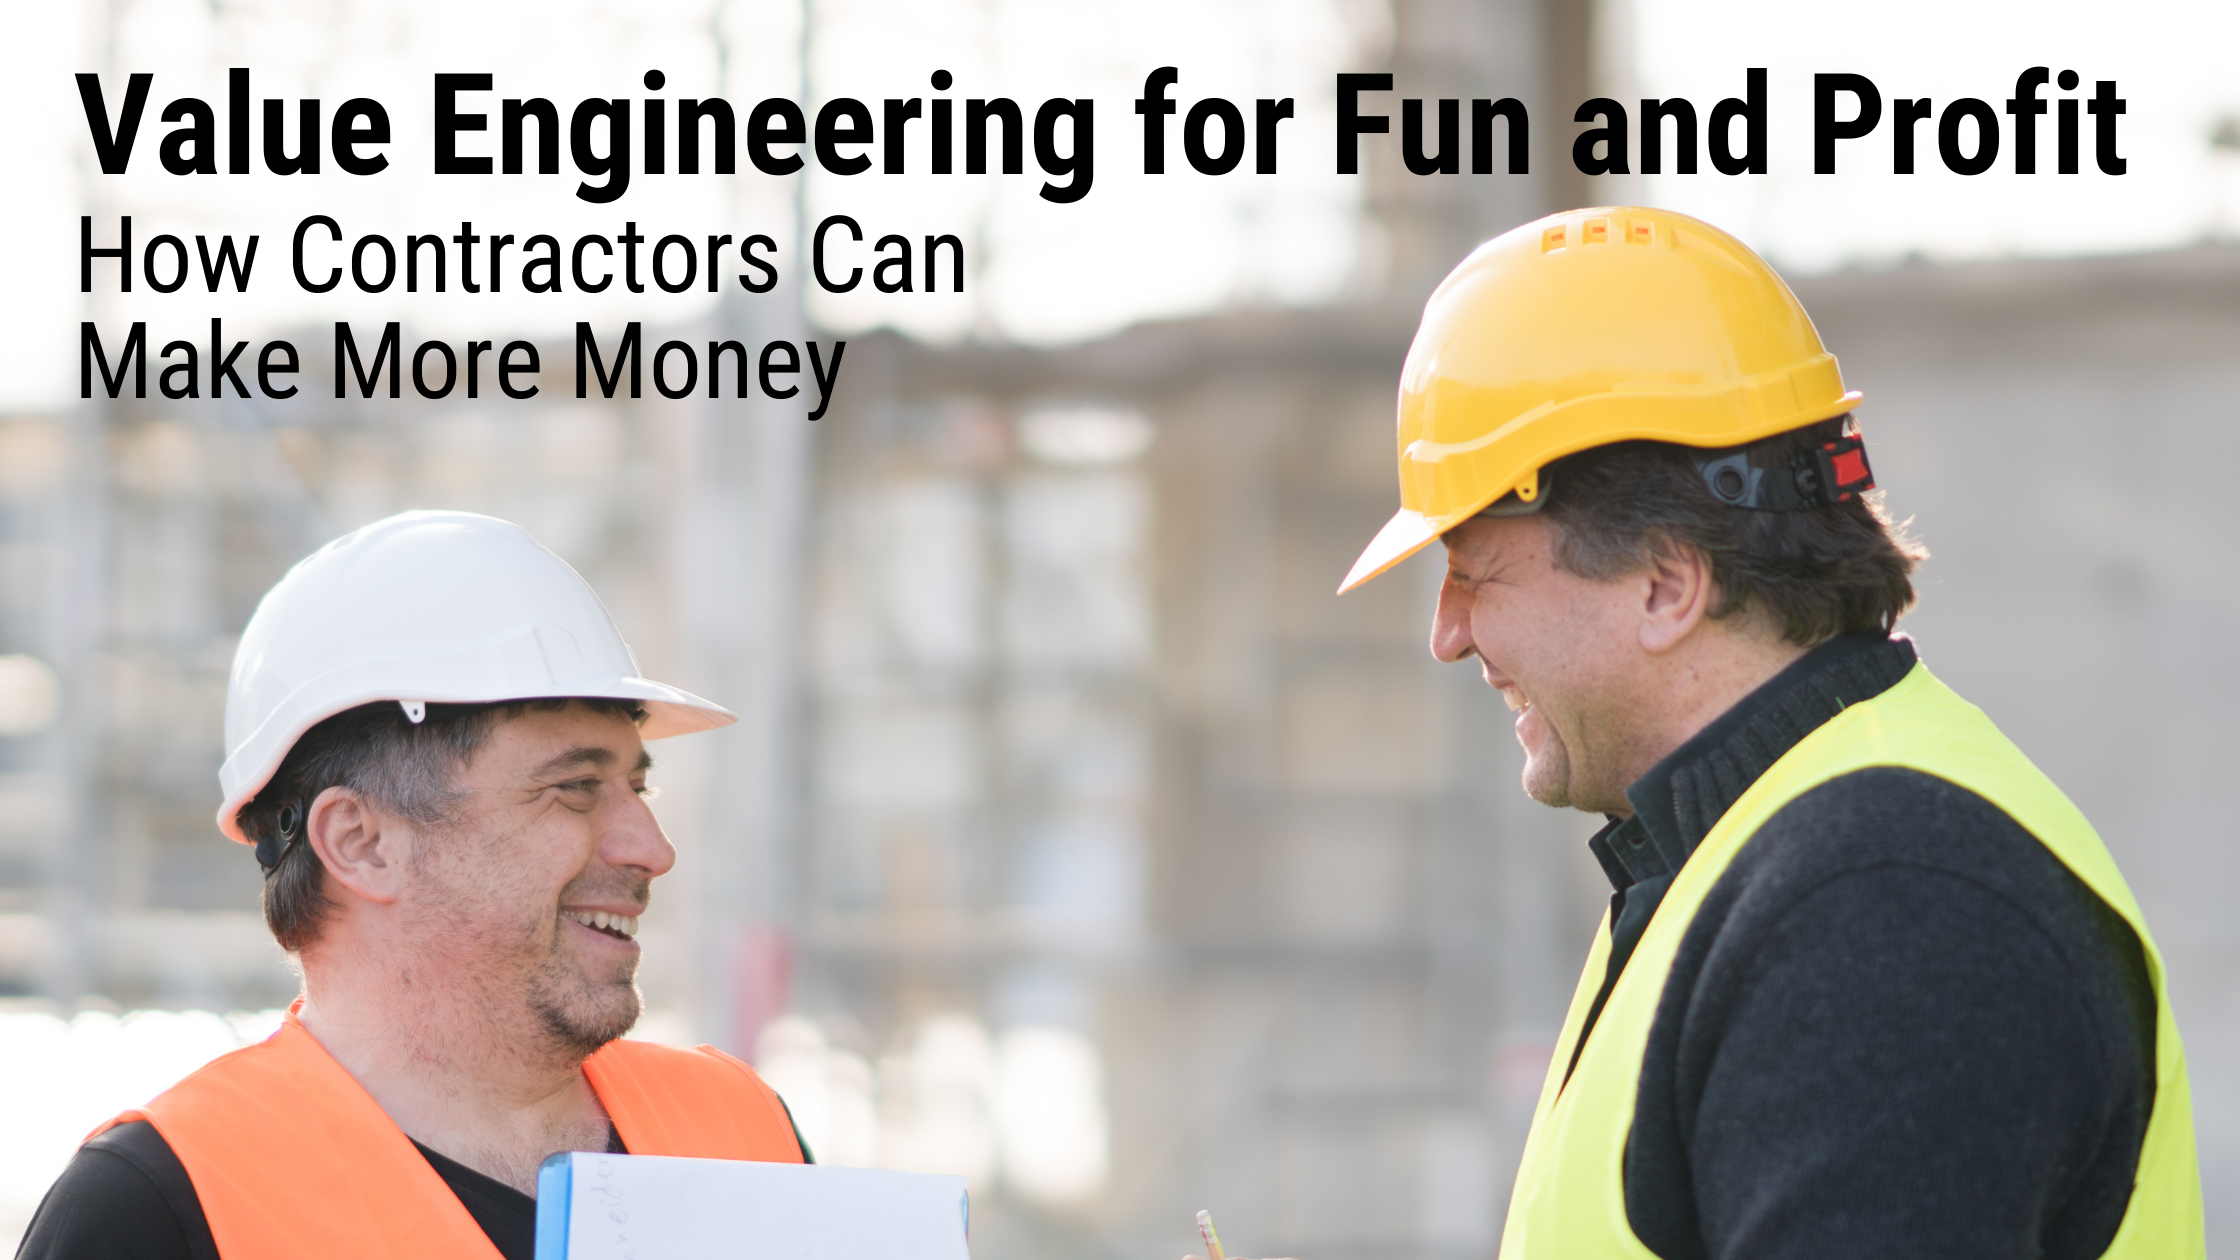 Value Engineering for Fun and Profit: How Contractors Can Make More Money